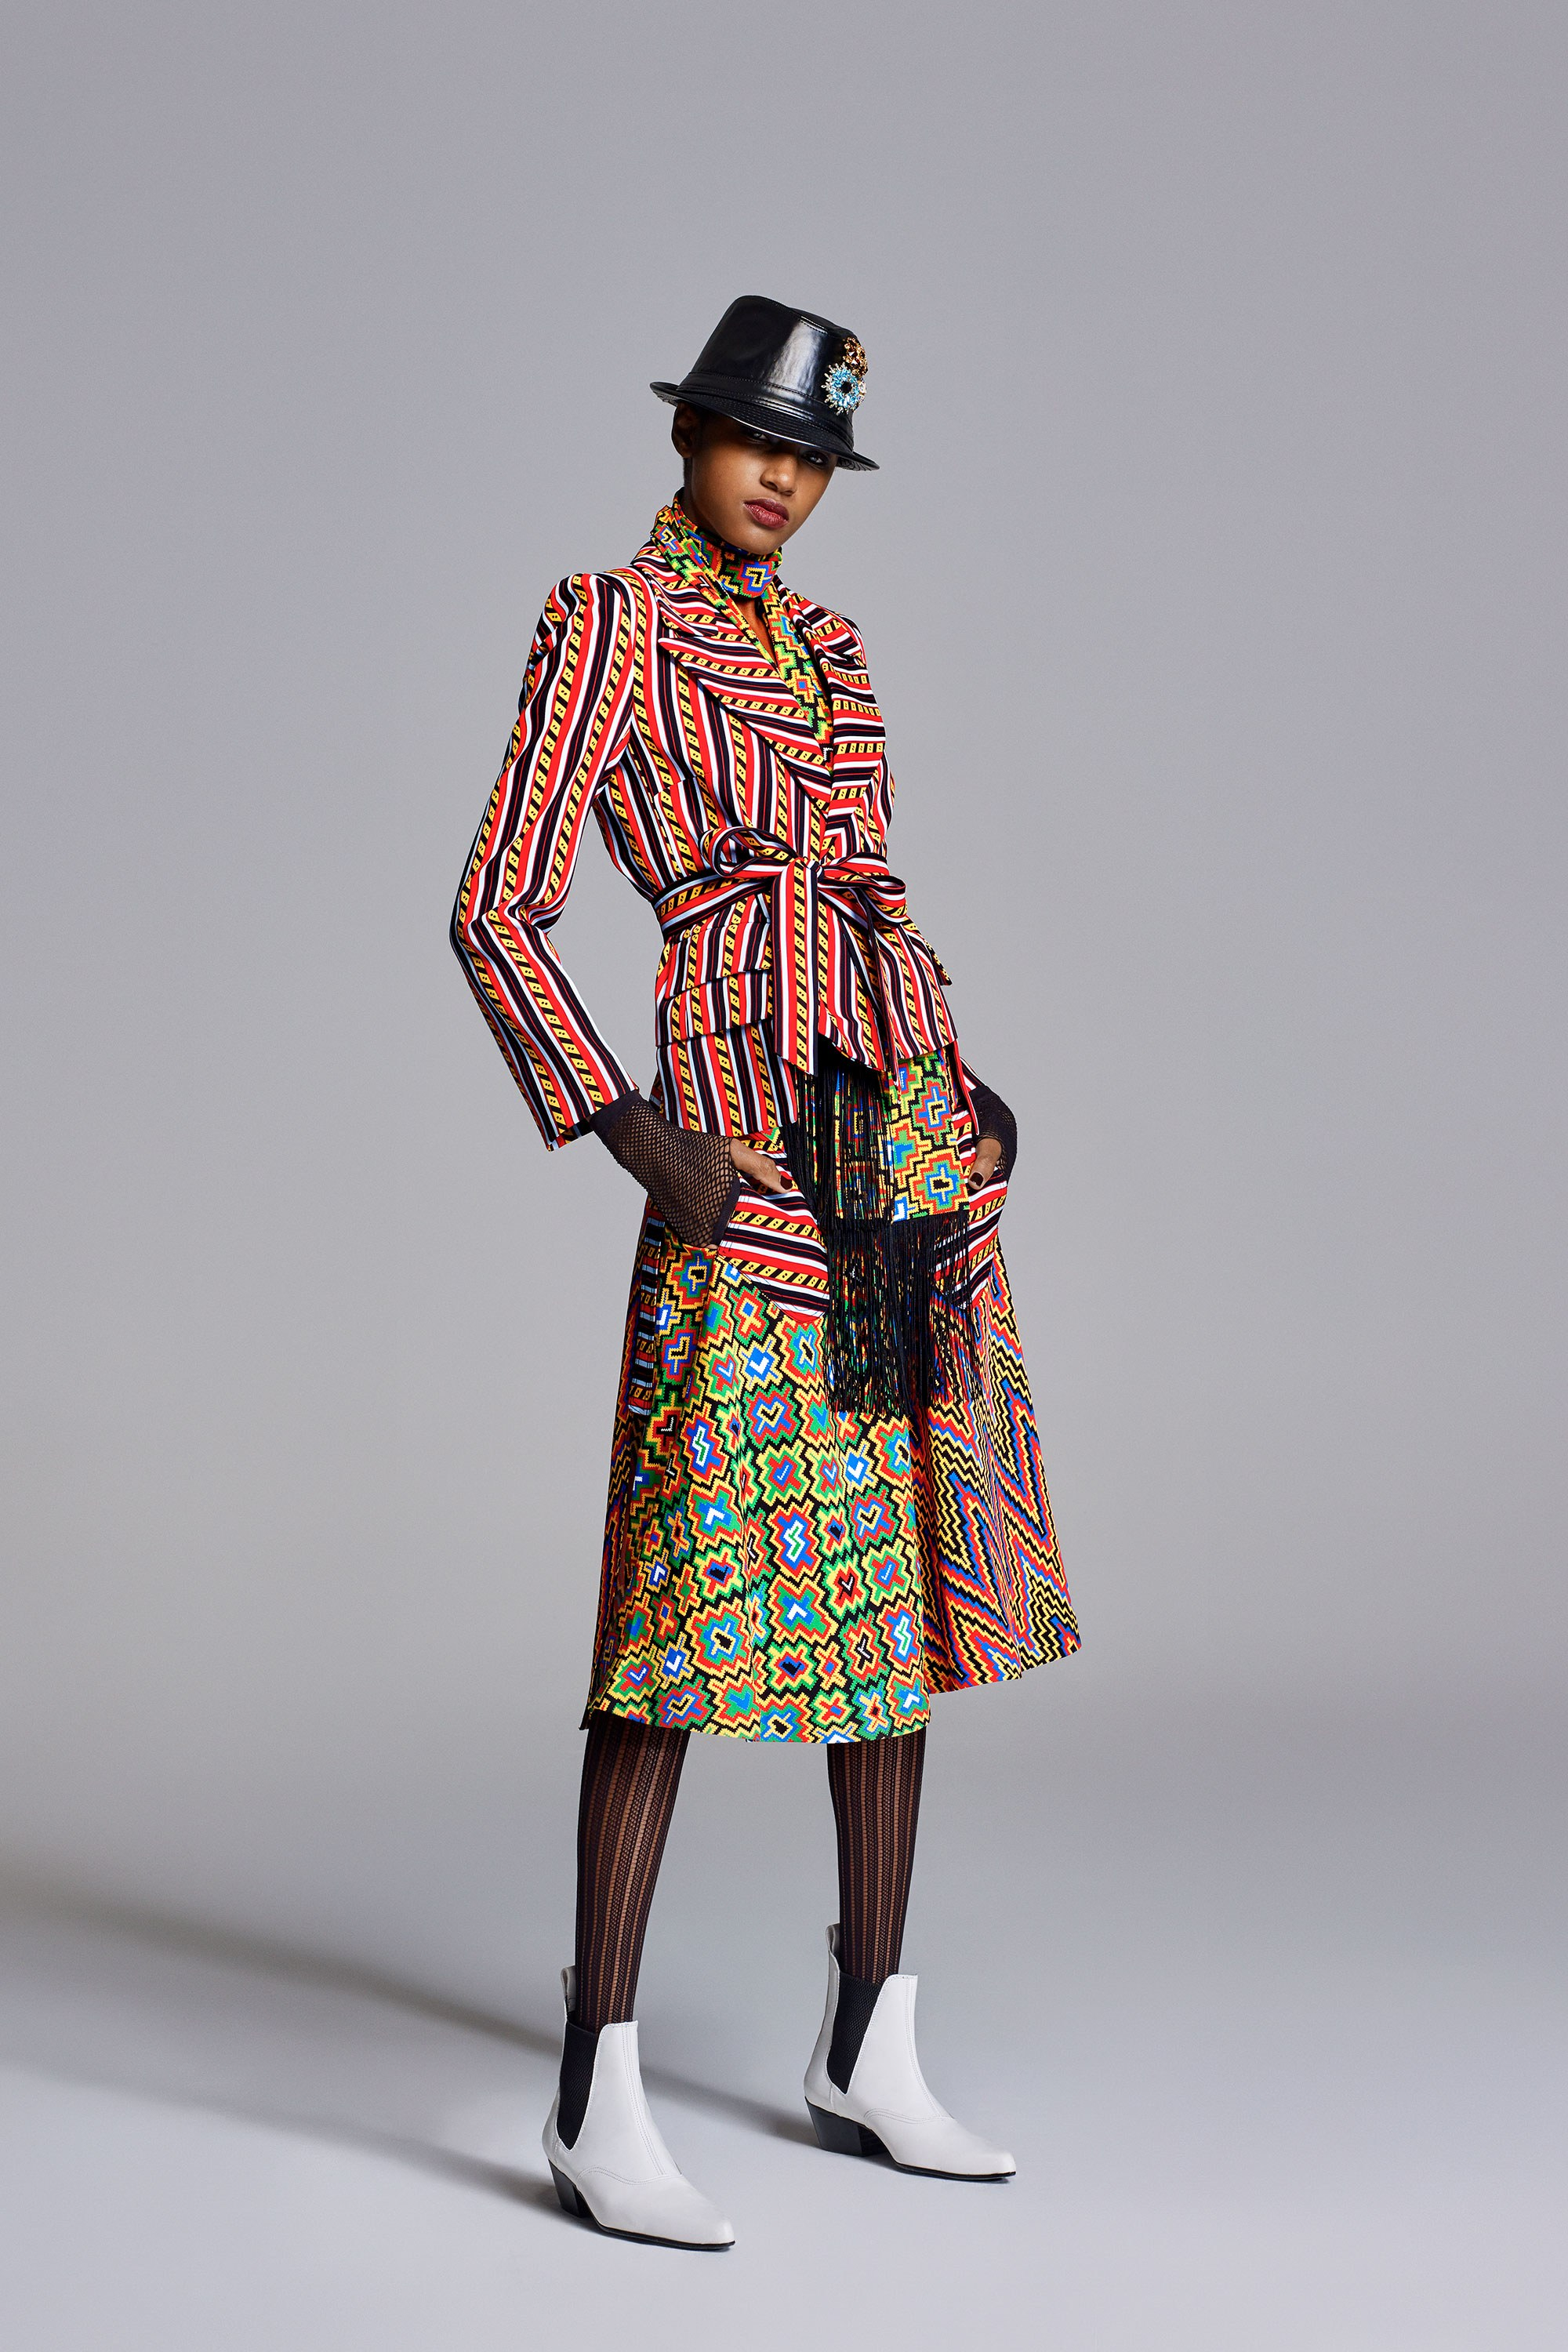 vibrant-colours-perfectly-tailored-outfits-make-duro-olowus-fall-2018-collection-released-london-fashion-week-2018